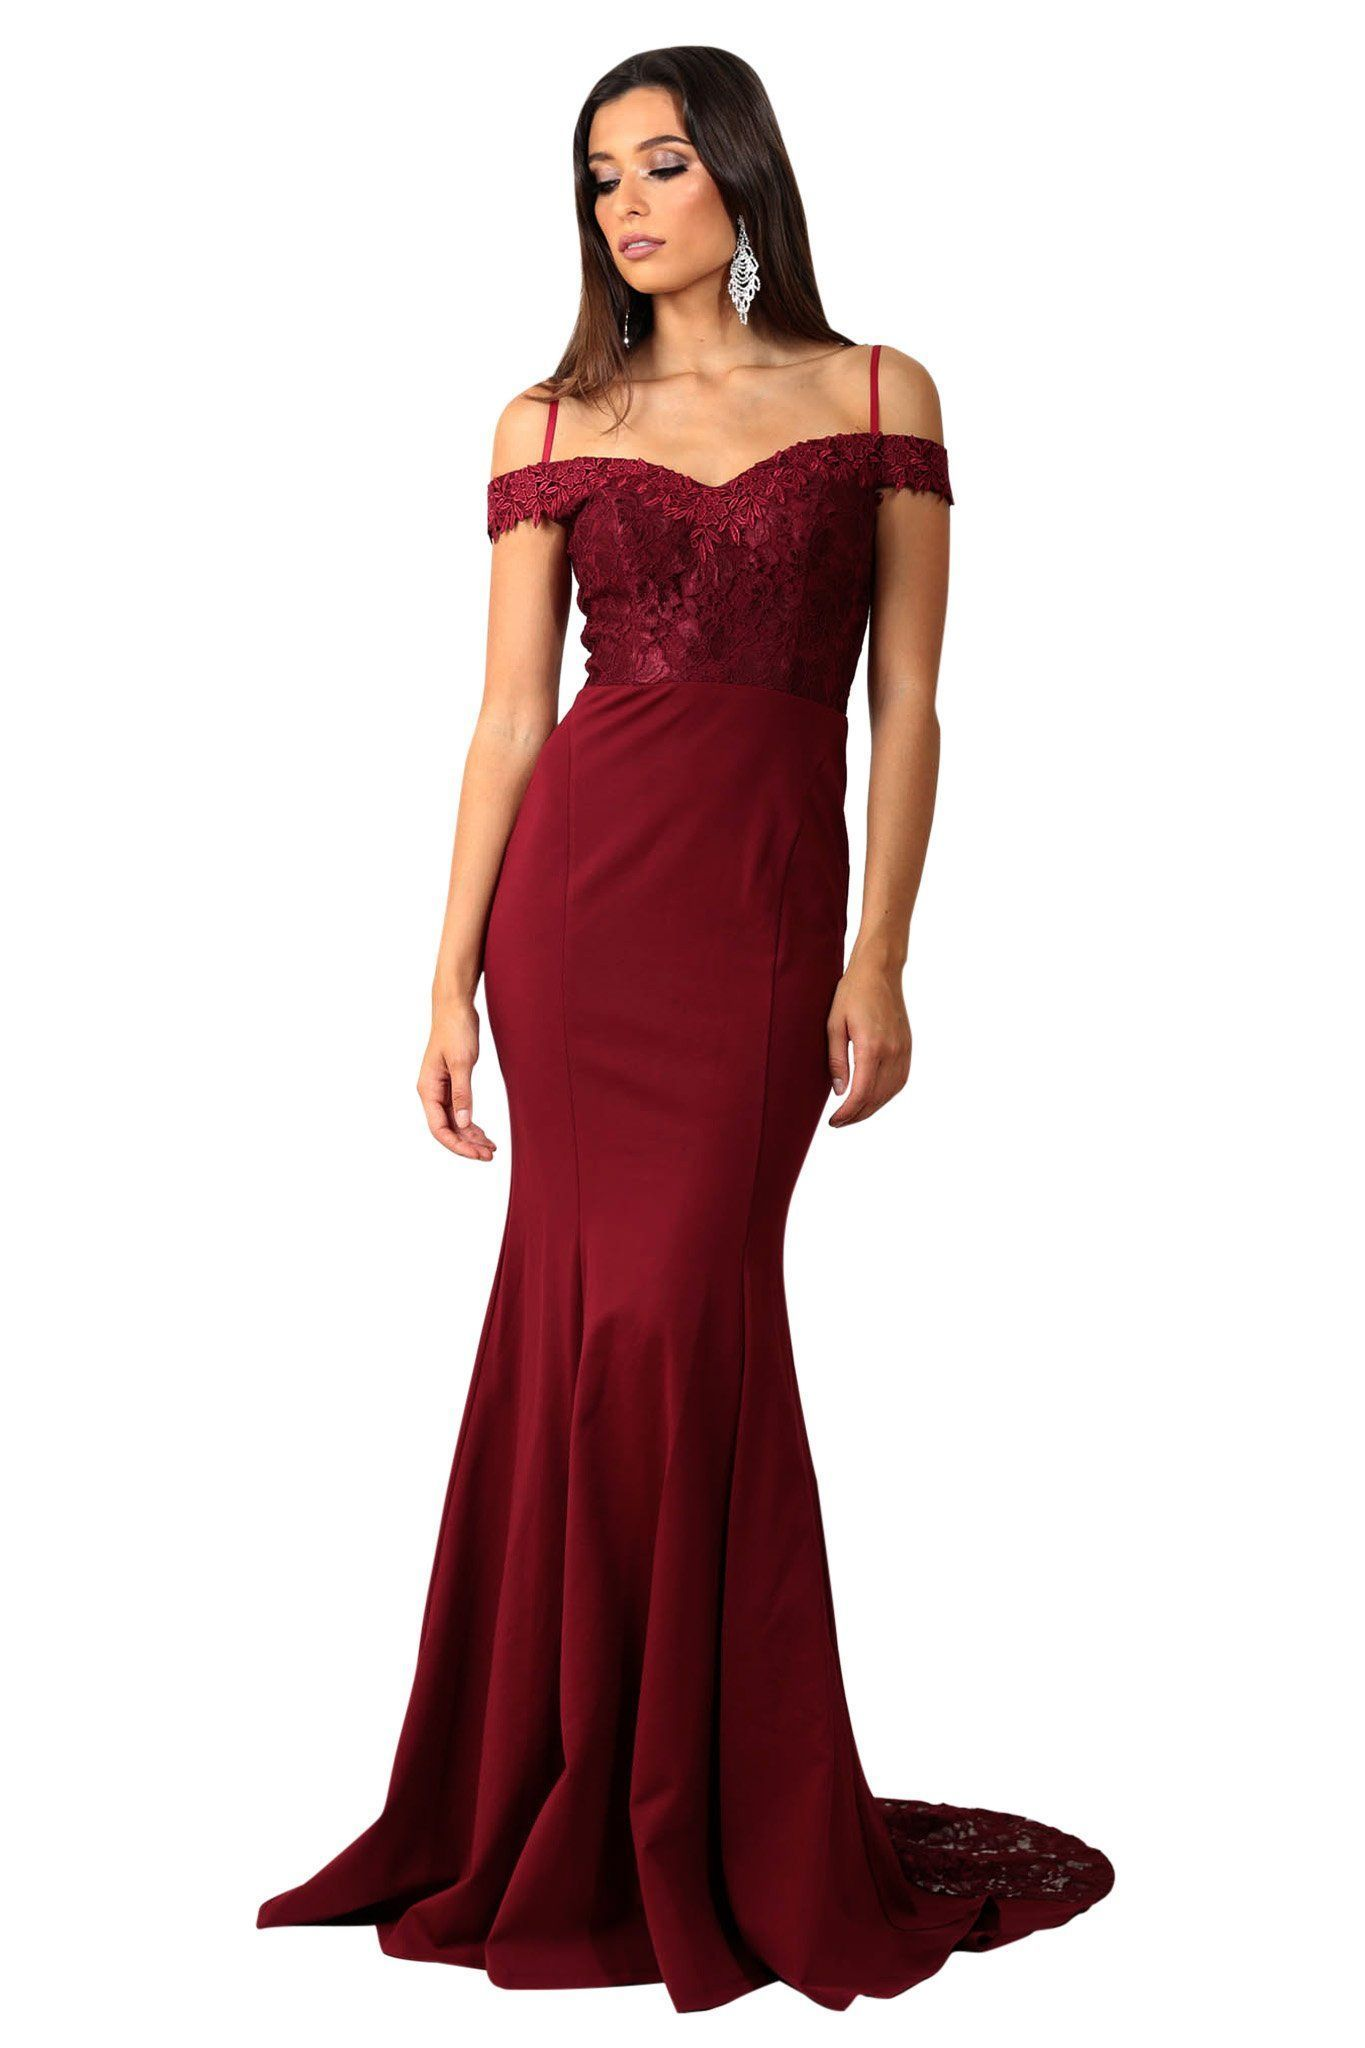 Wine red burgundy mermaid prom dresses off the shoulder lace simple